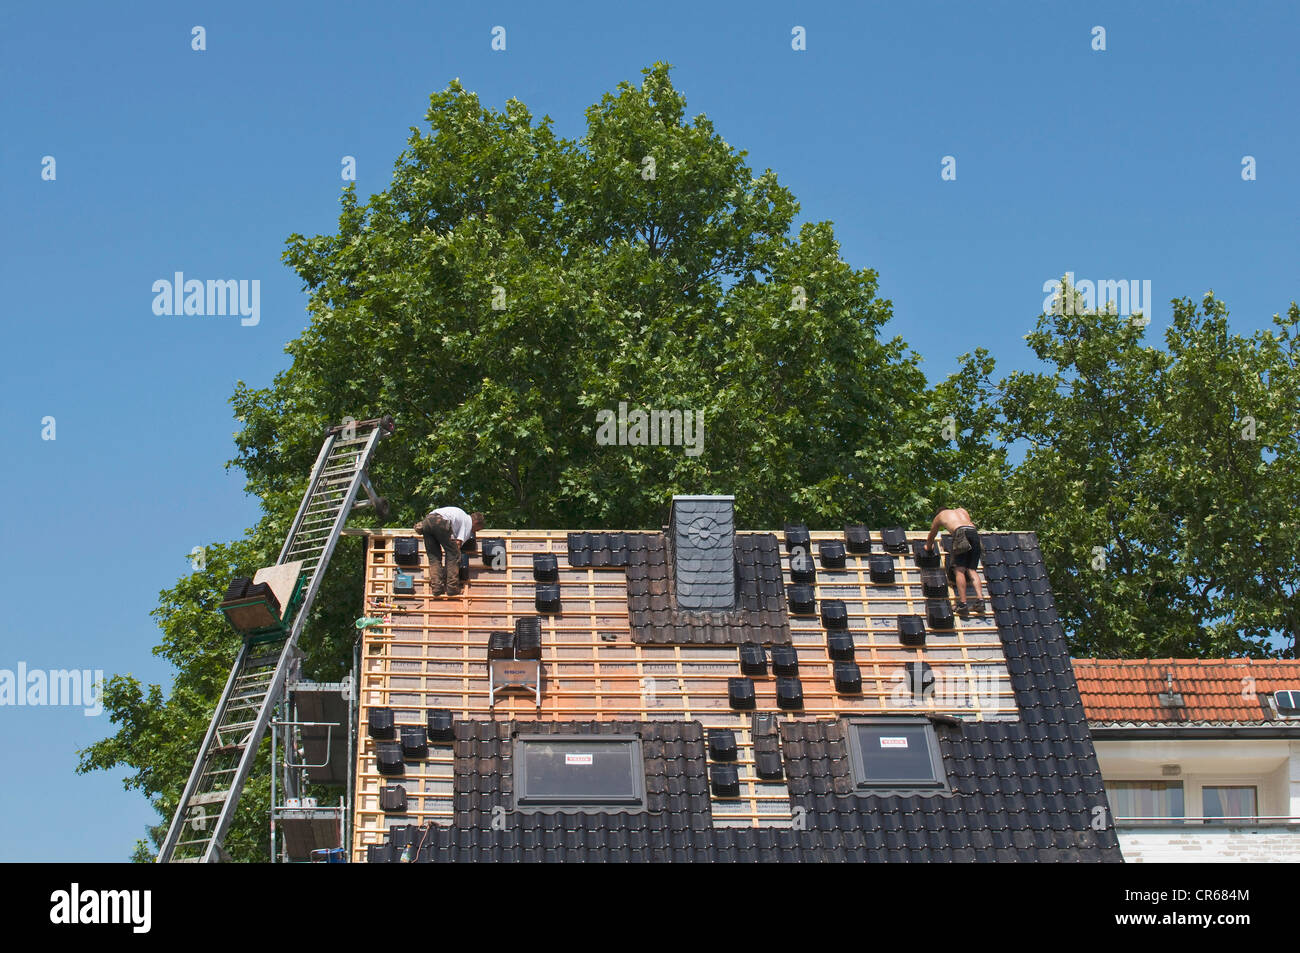 A roof is being tiled, residential building, modernisation, PublicGround - Stock Image